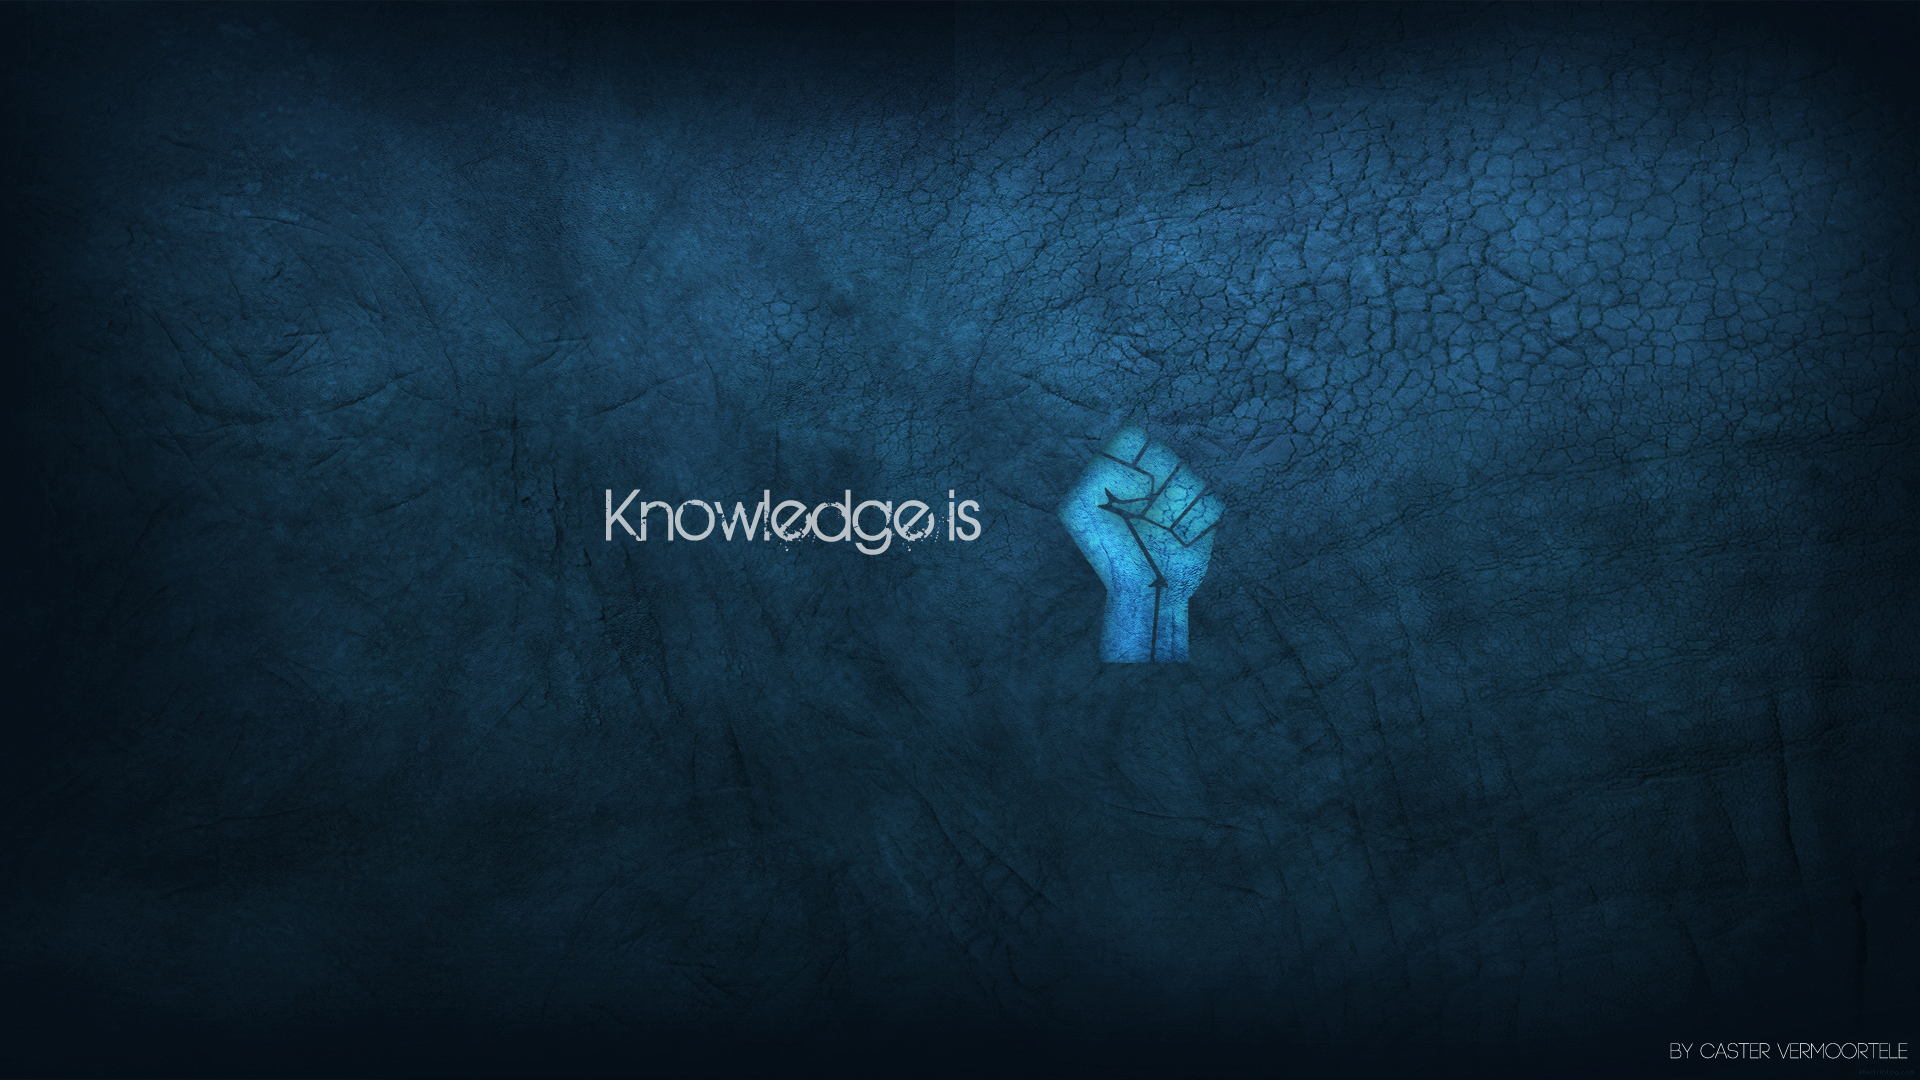 Pictures of Knowledge HD, 1920x1080 px, 06.27.15